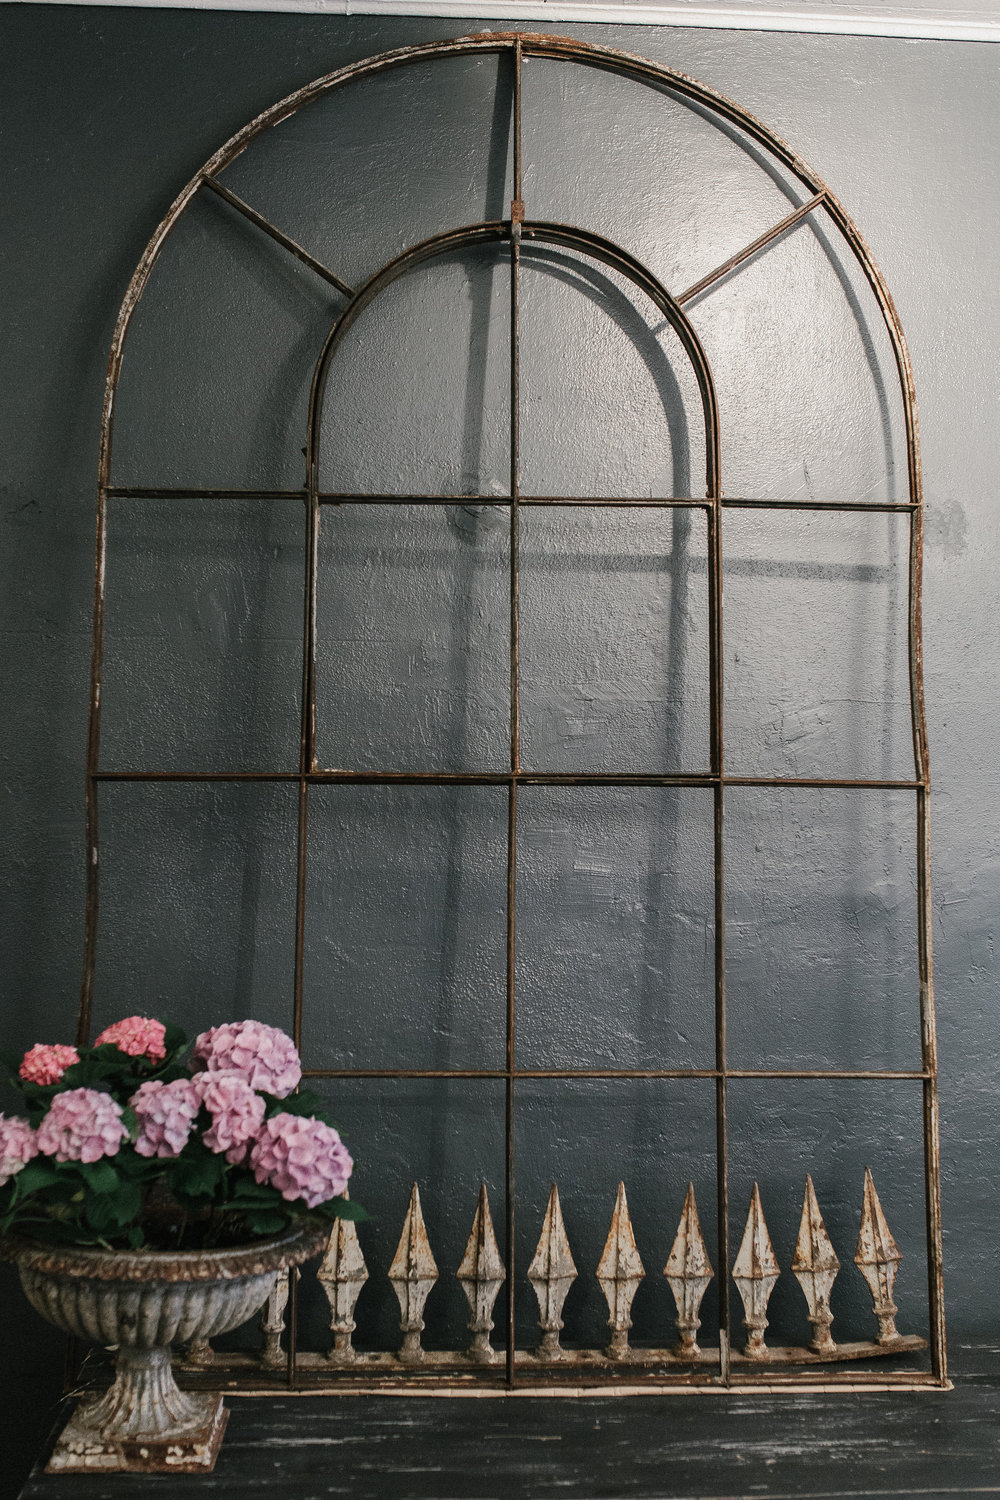 French orangerie window (circa 1820)